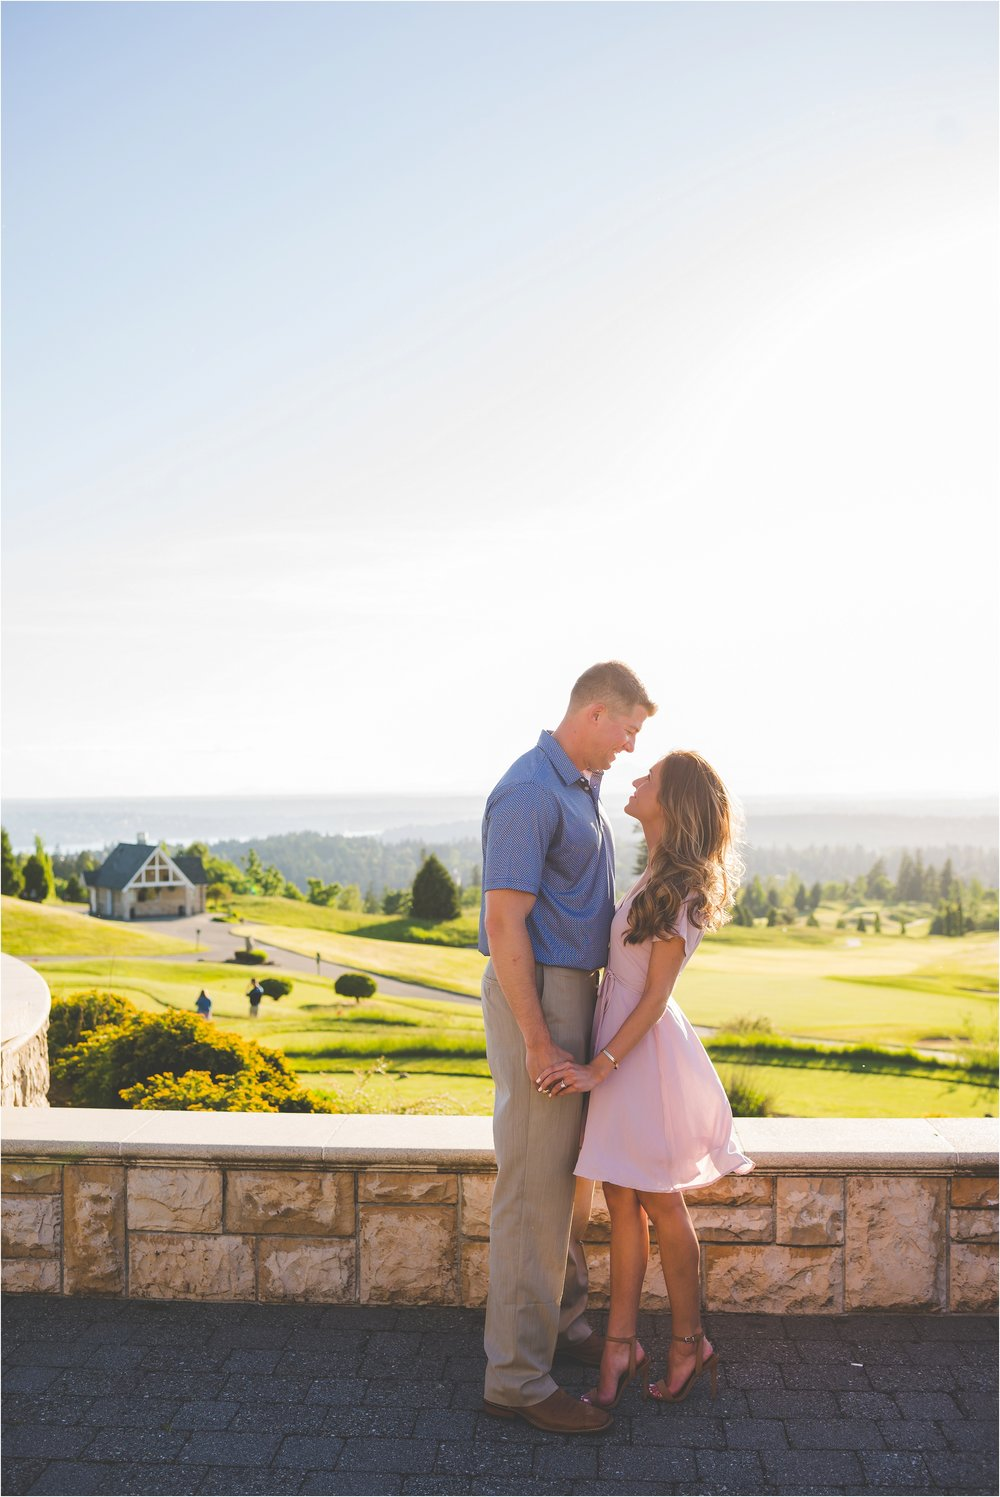 newcastle-golf-club-proposal-jannicka-mayte-seattle-washington-engagement-wedding-photographer_0028.jpg